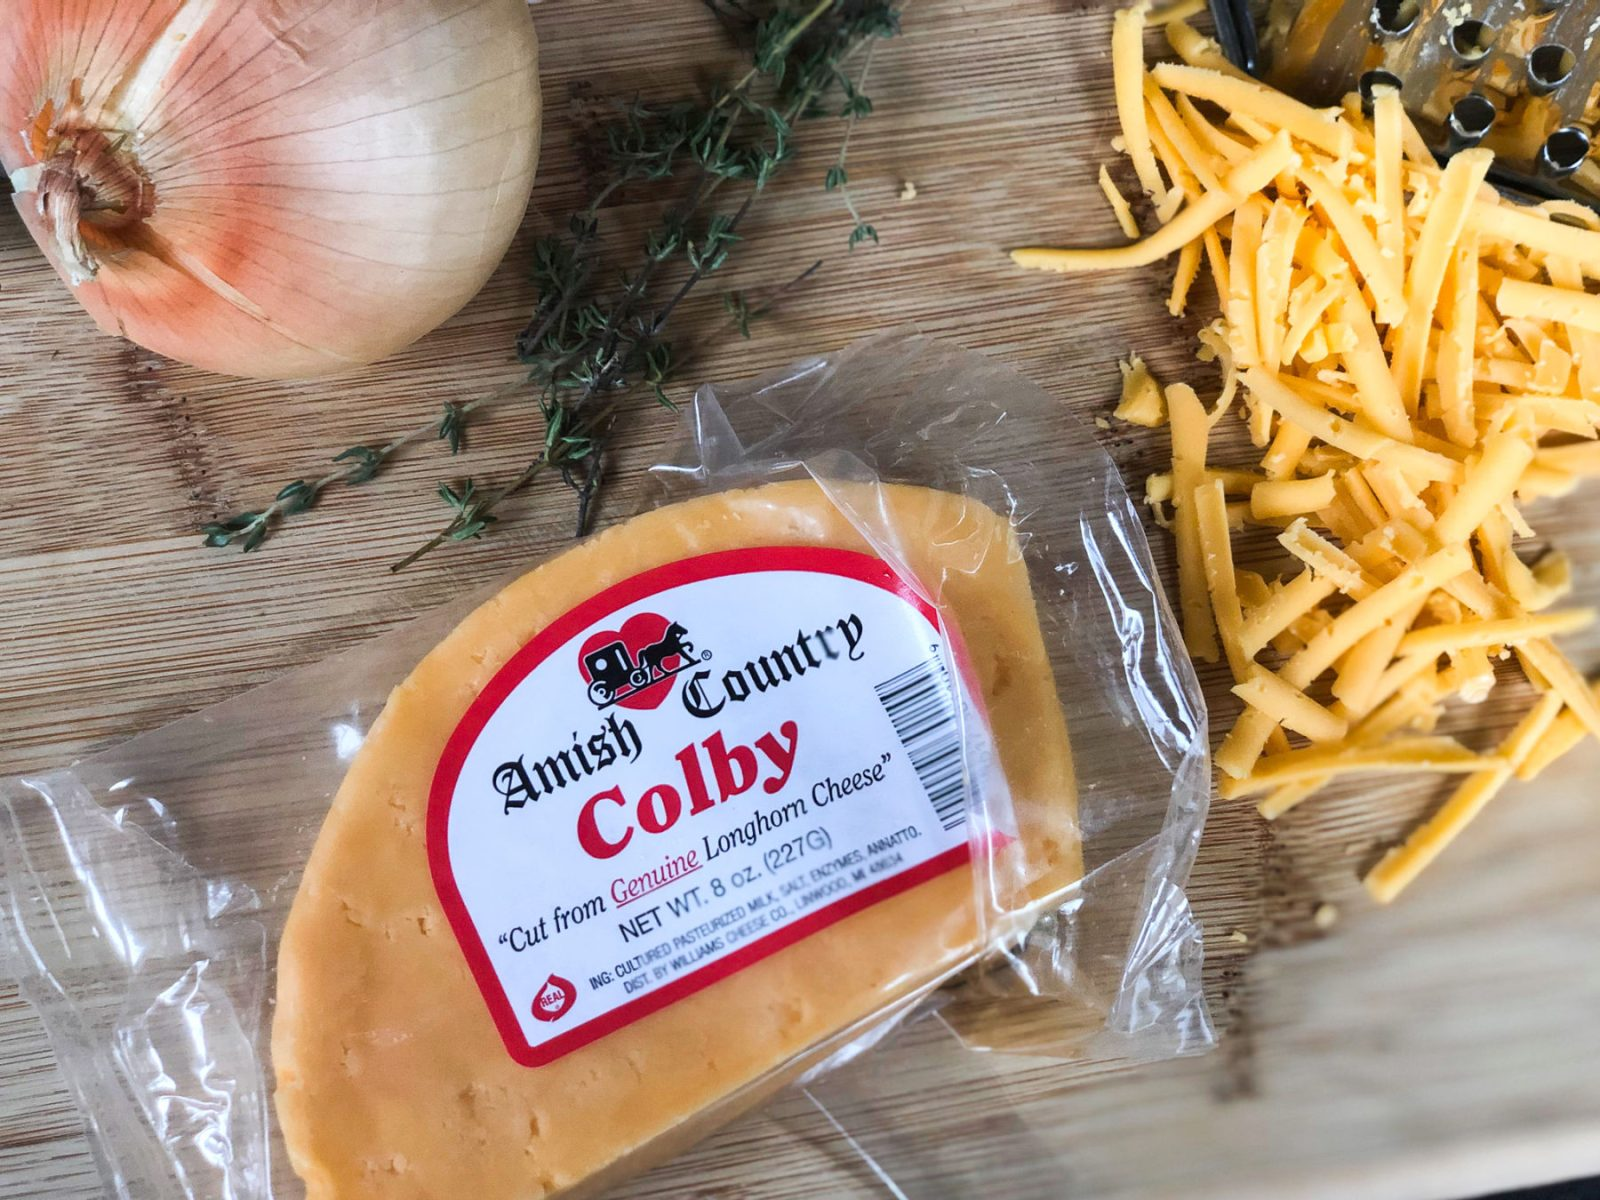 Amish Country Chunk Cheese As Low As $2.45 At Publix (Almost Half Price!) on I Heart Publix